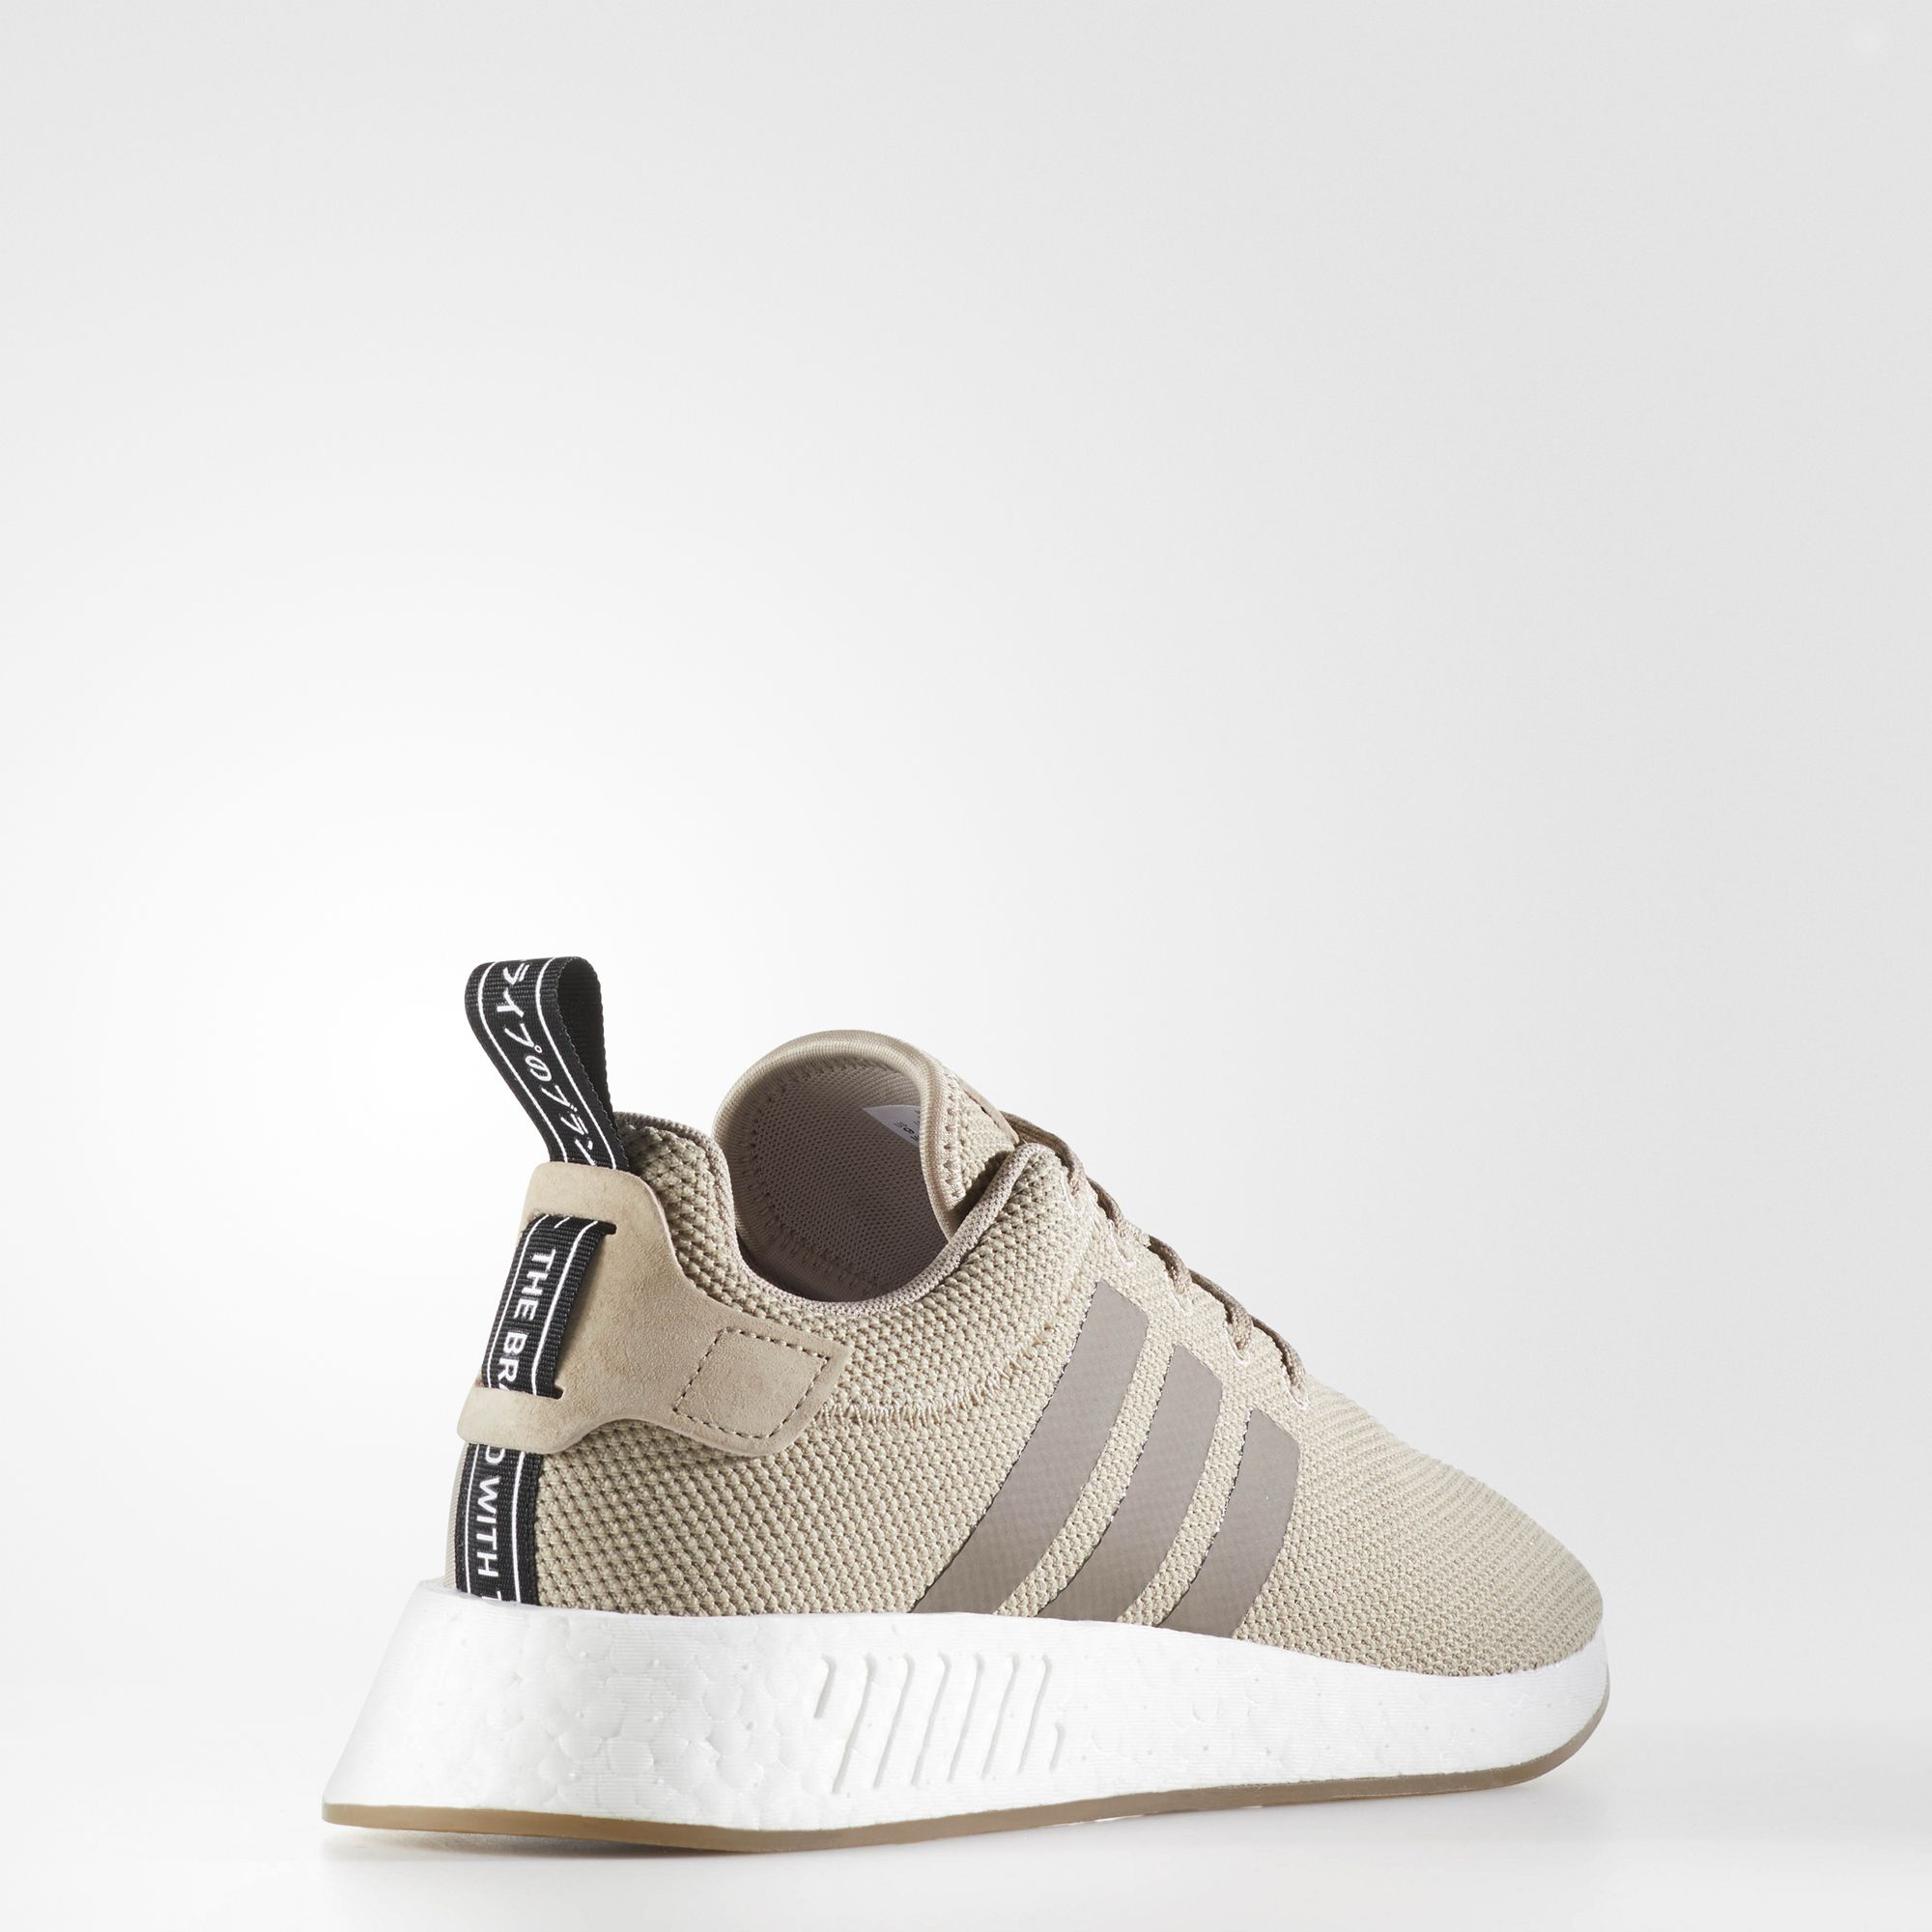 BY9916 adidas NMD R2 Simple Brown 3